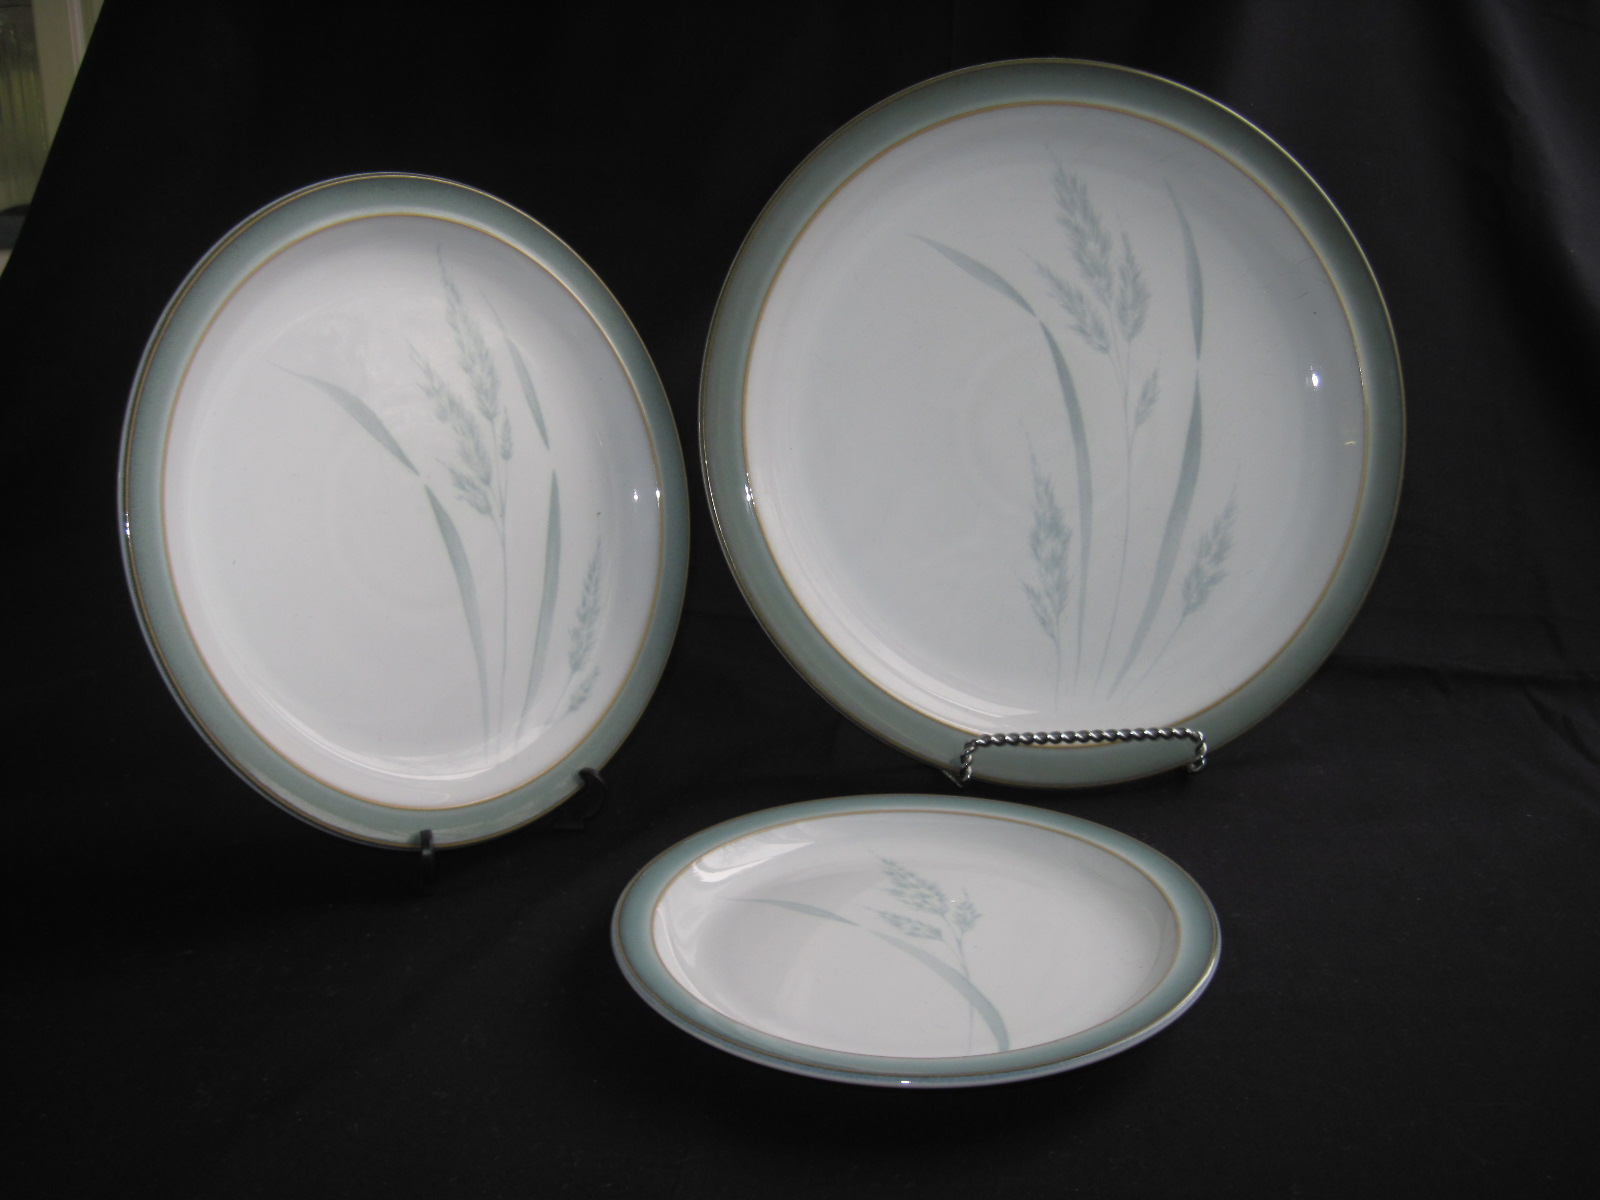 These are very nice subtly patterned Denby plates in the Regency Meadow pattern produced between 2002 and 2006. This pattern compliments their Regency ... & Denby England | fabfindsblog